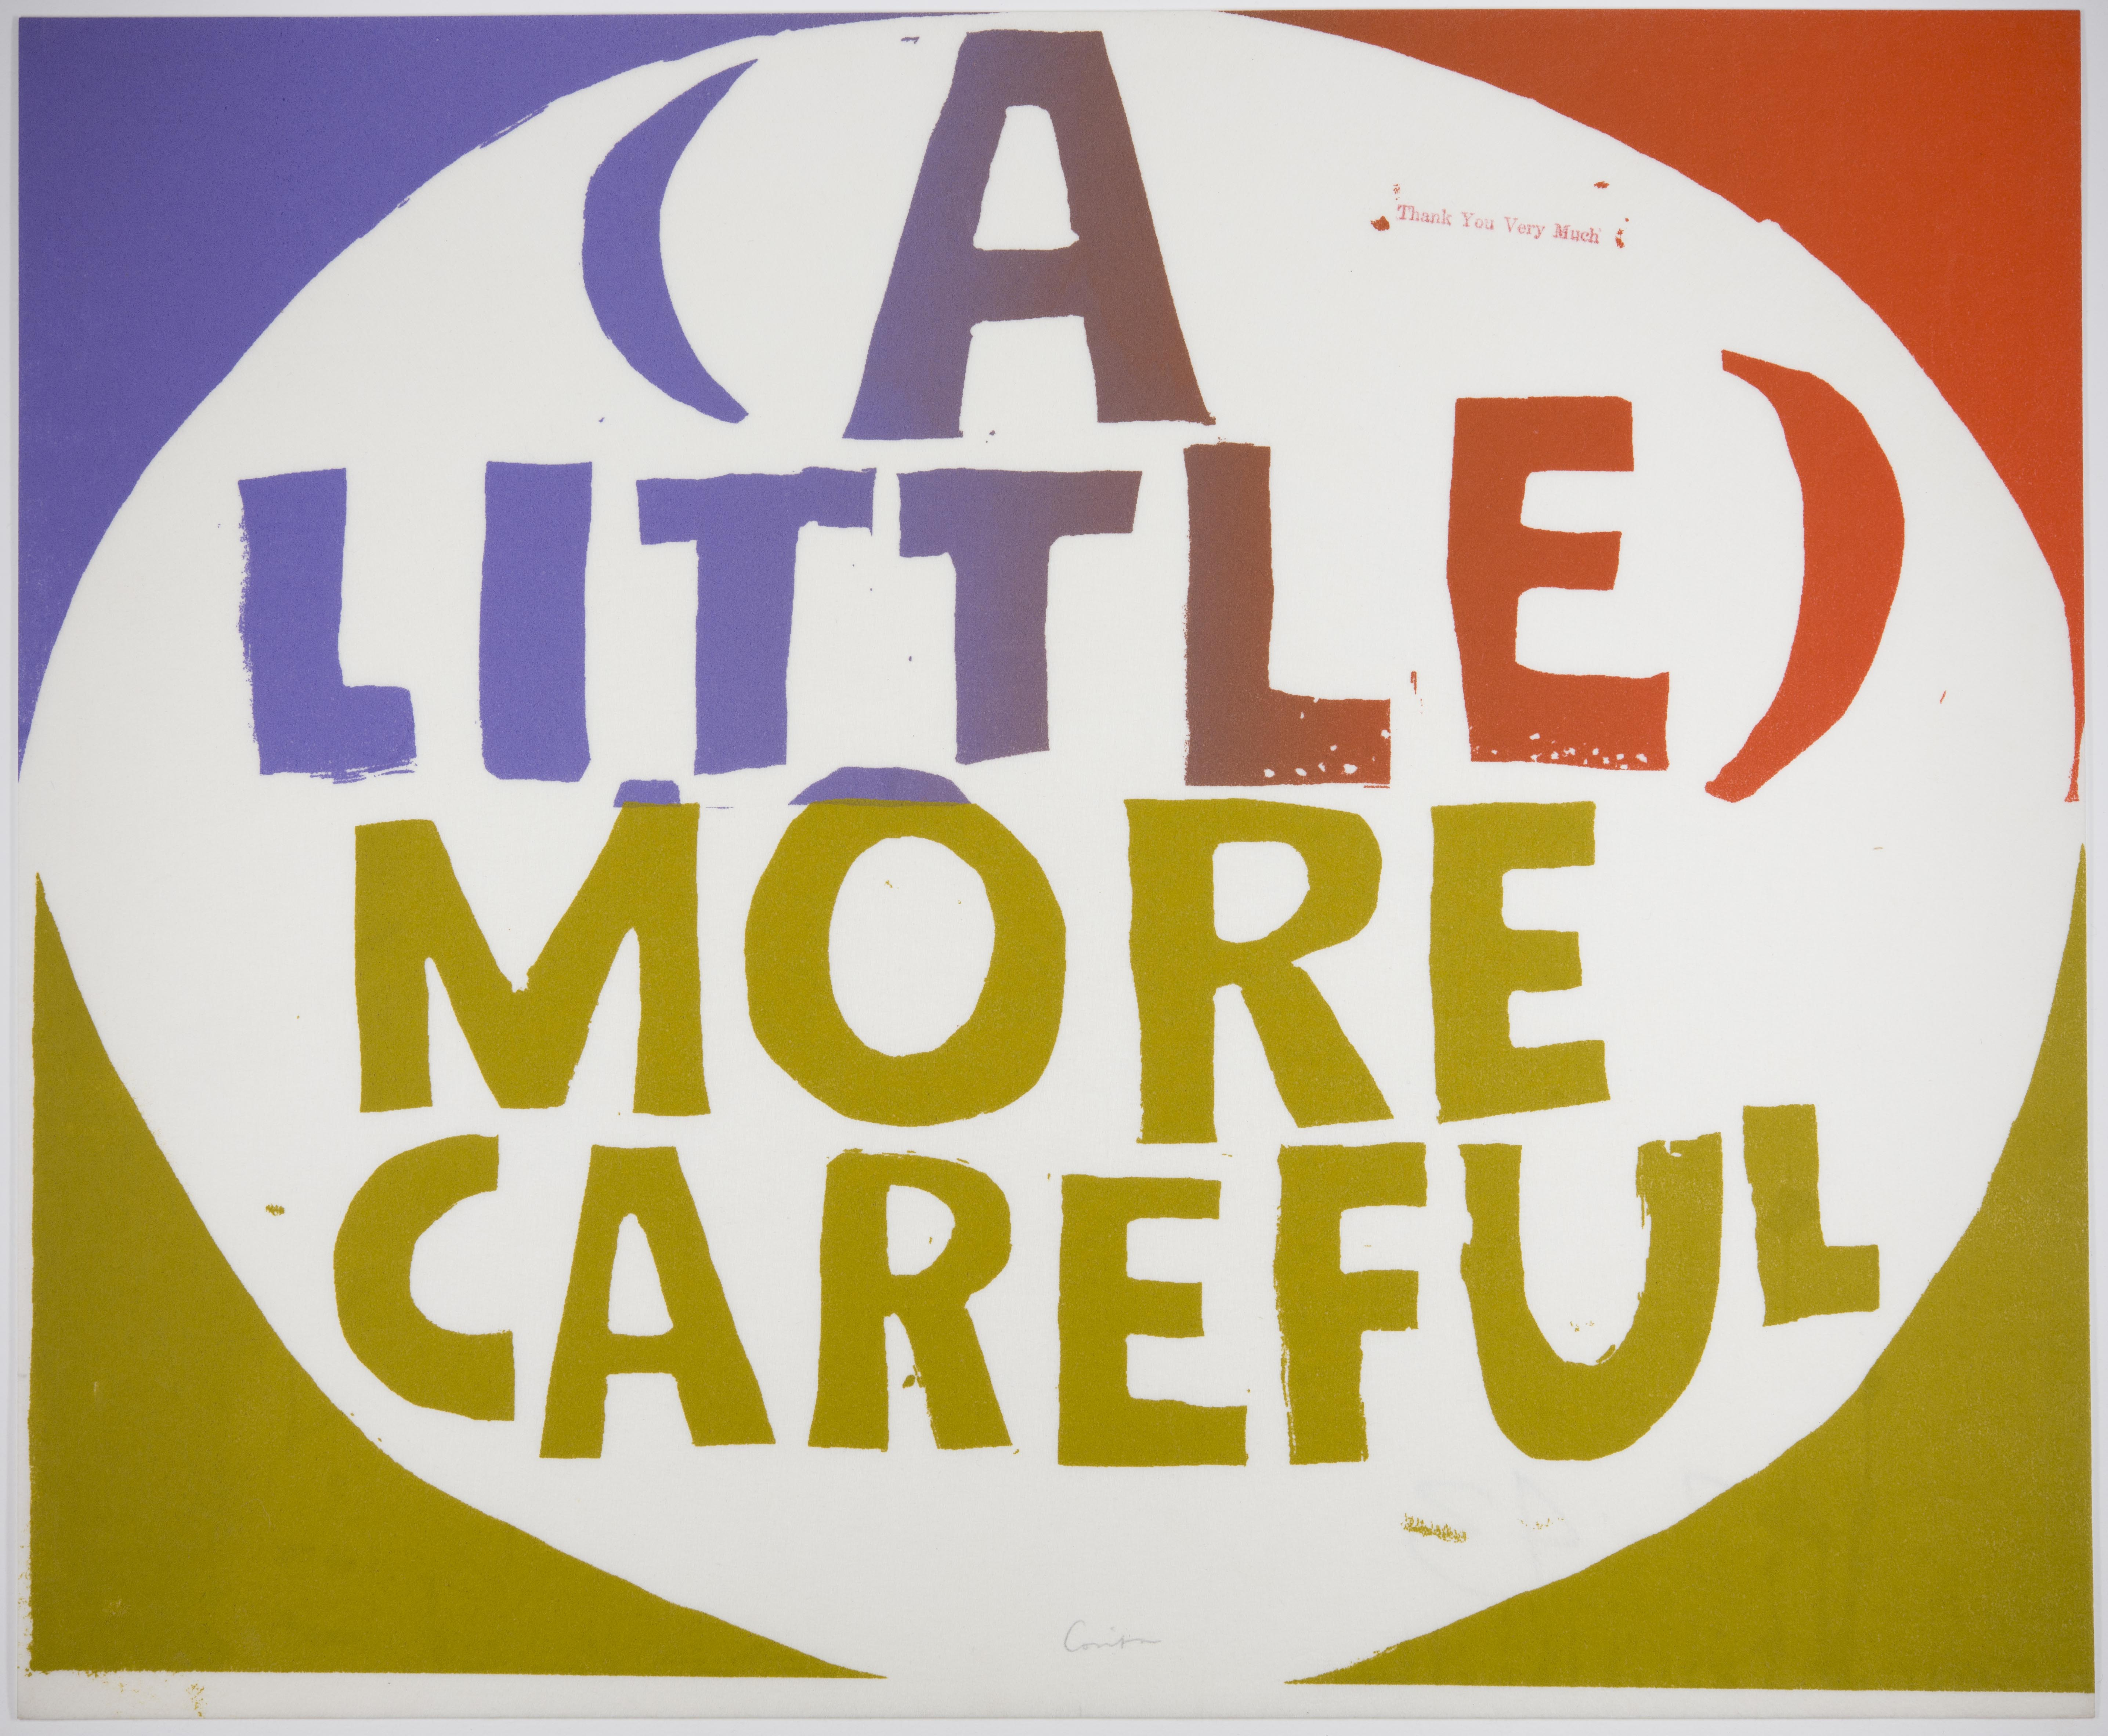 Corita Kent, (a little) more careful, 1967